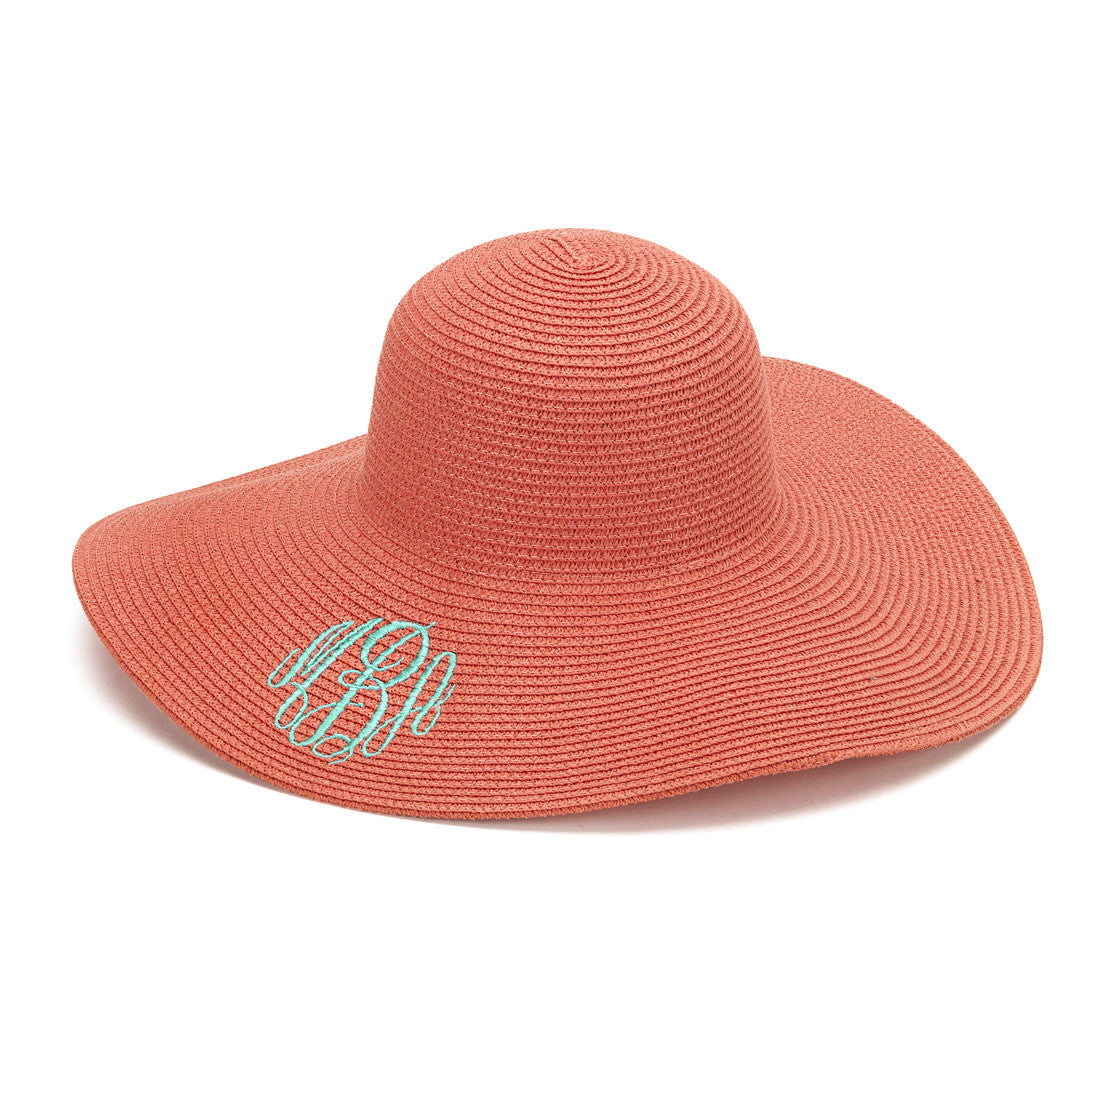 Coral Adult Mongrammed Floppy Hat